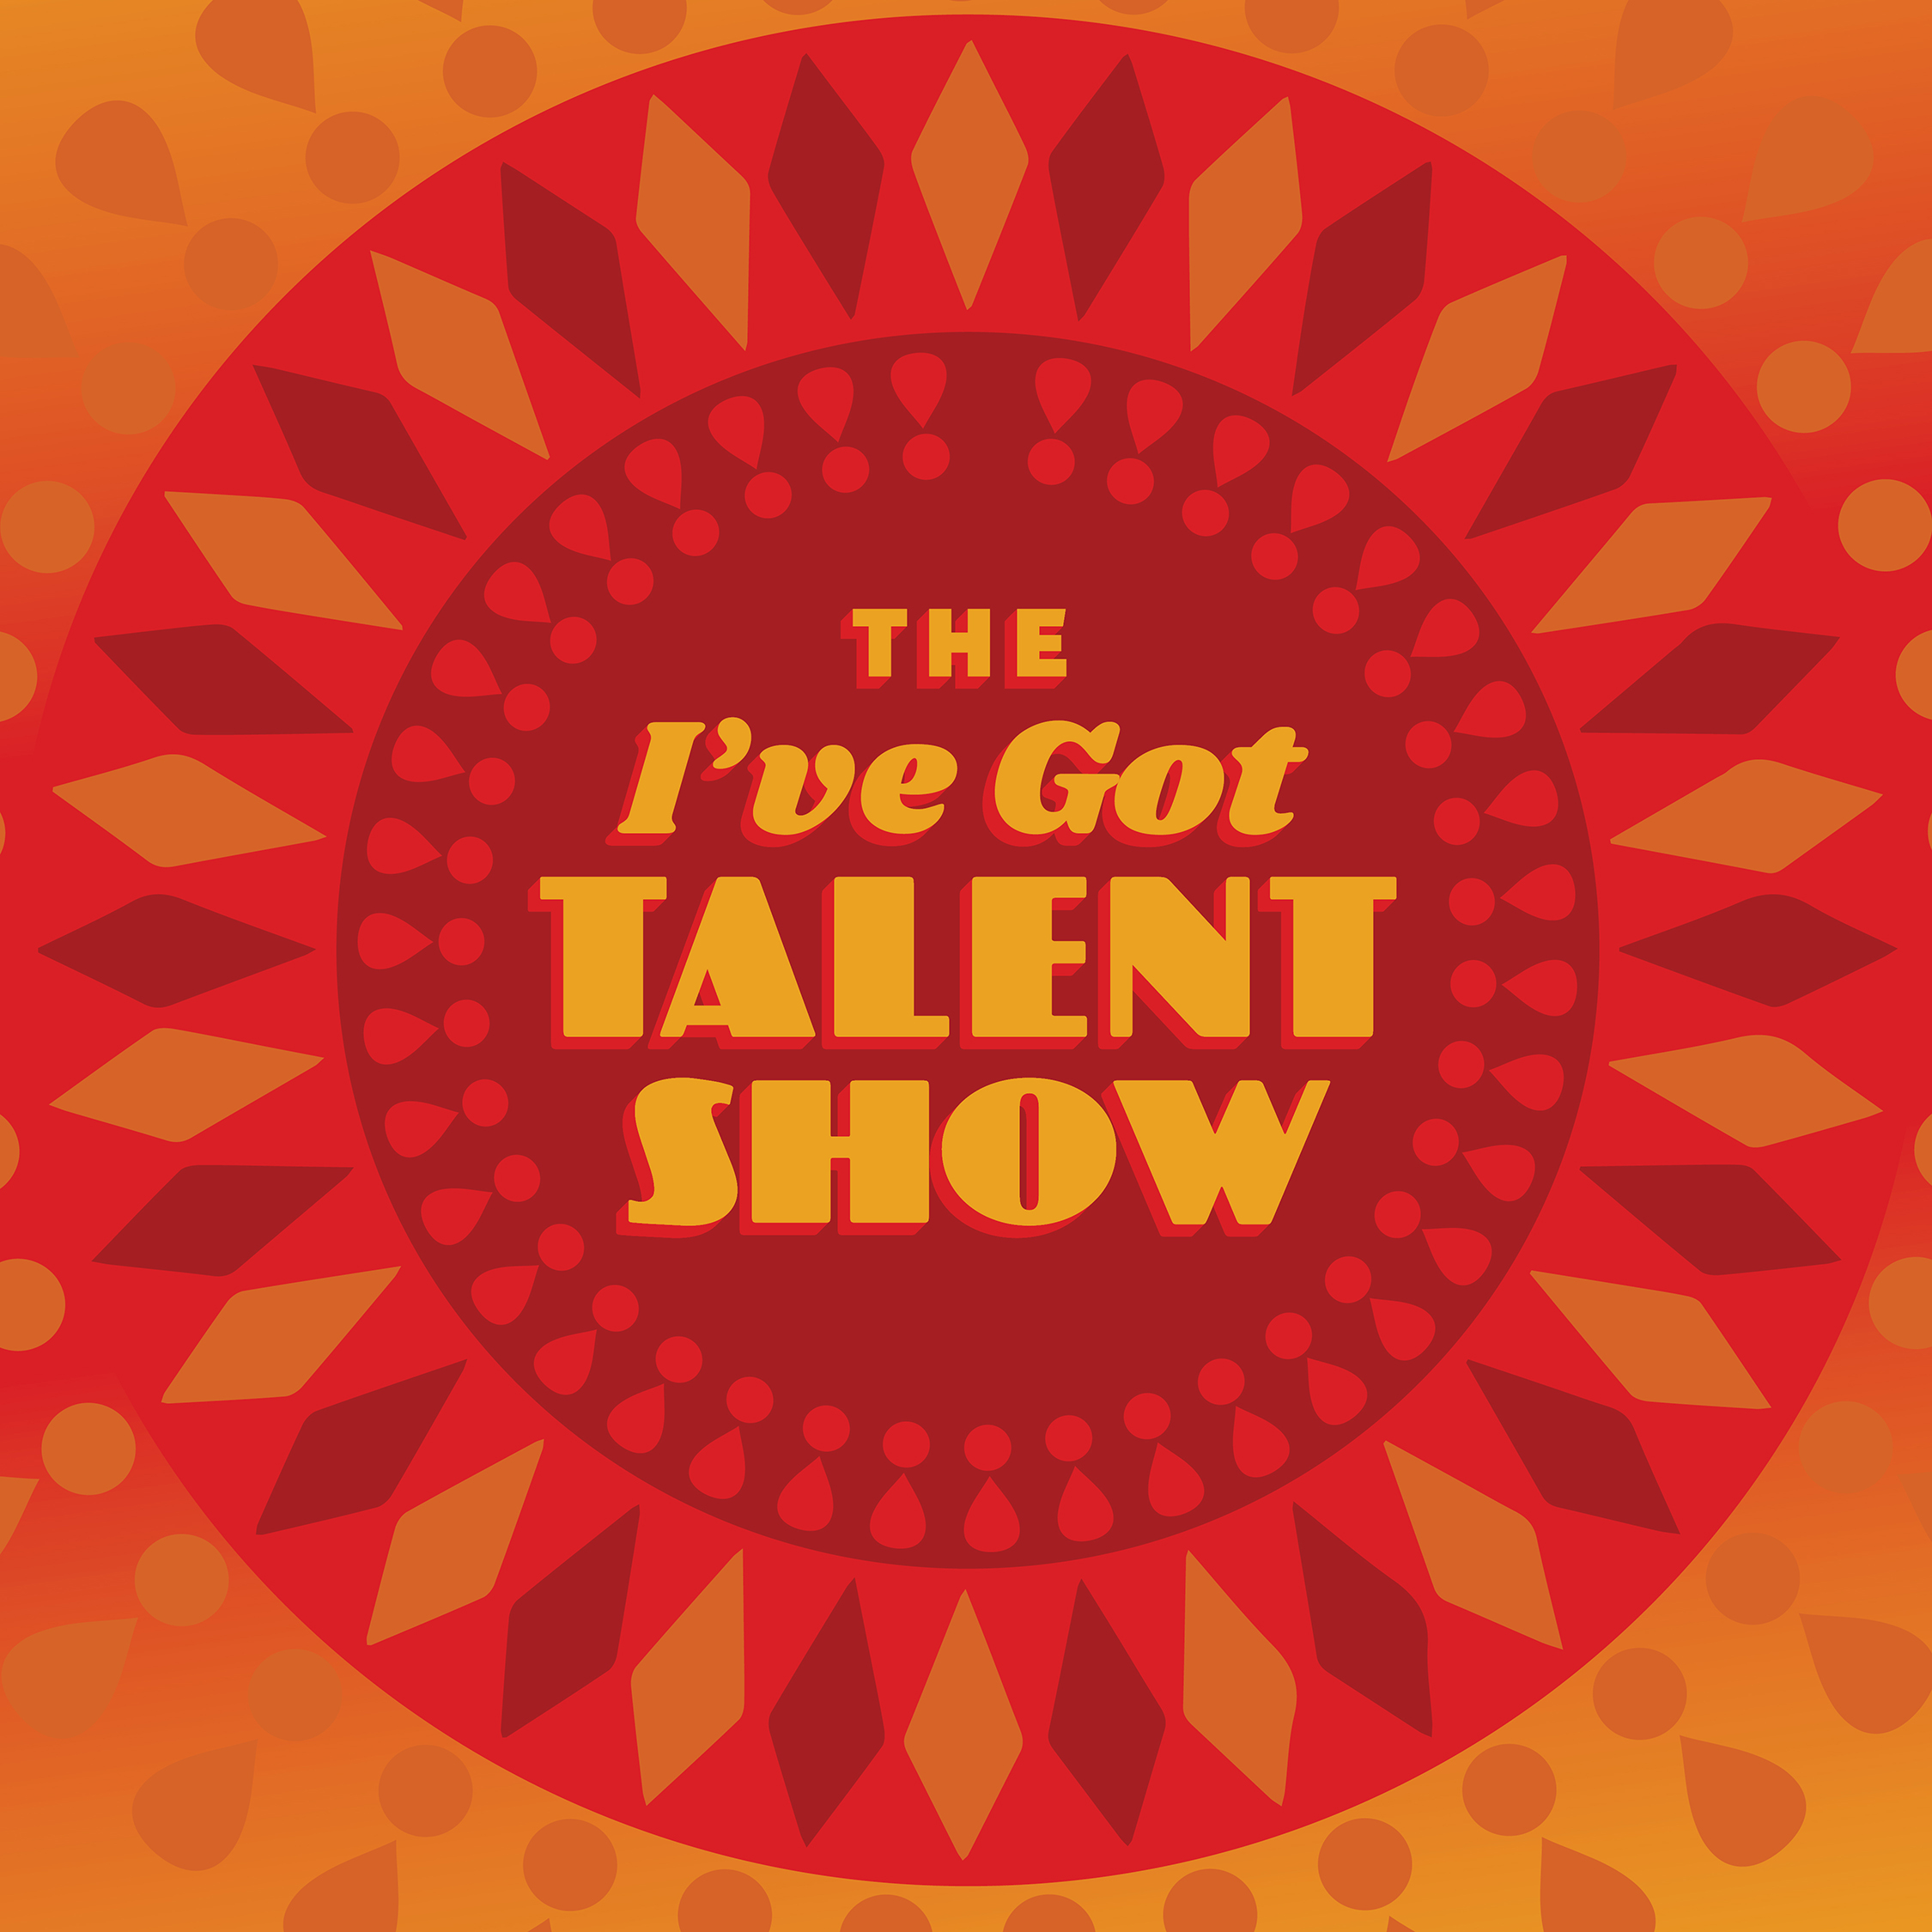 Poster for The I've Got Talent Show with En Route Productions